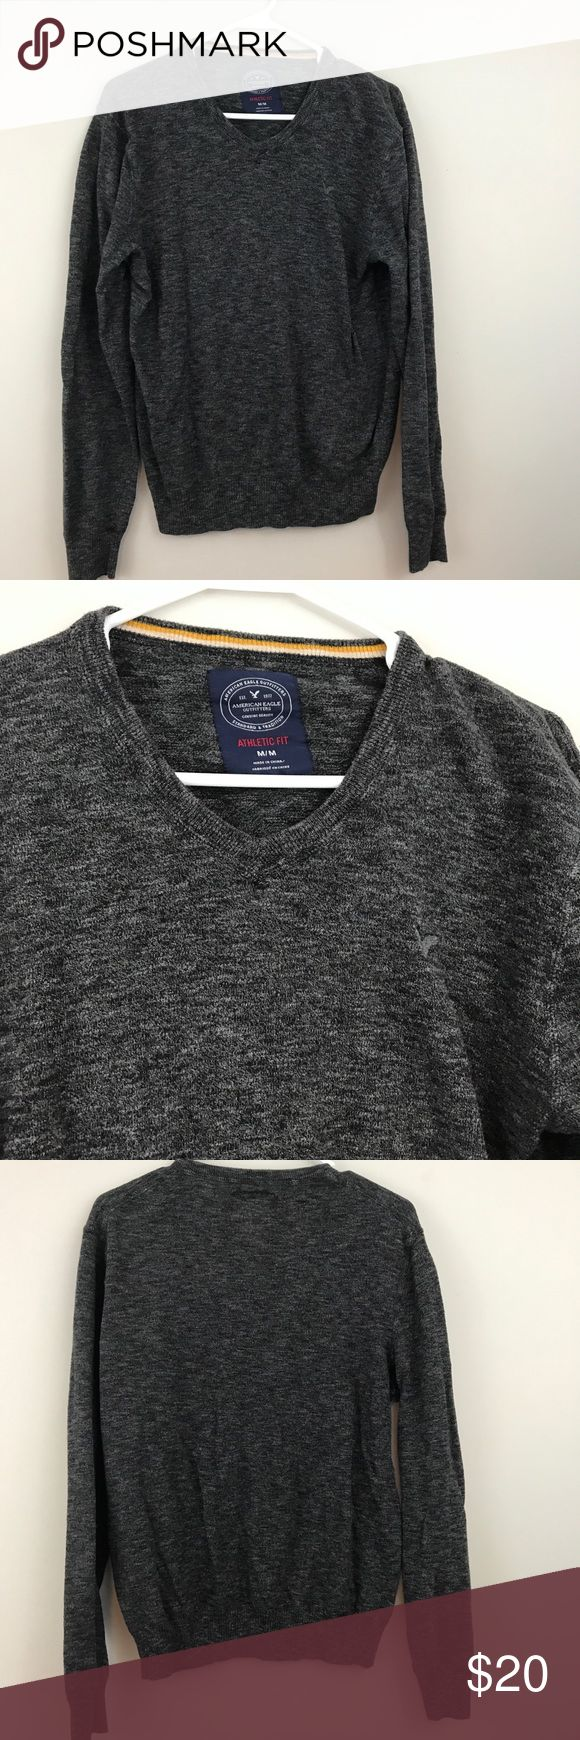 American Eagle gray athletic fit sweater *Pre loved in excellent condition  *Gray athletic fit sweater  *Size M American Eagle Outfitters Sweaters